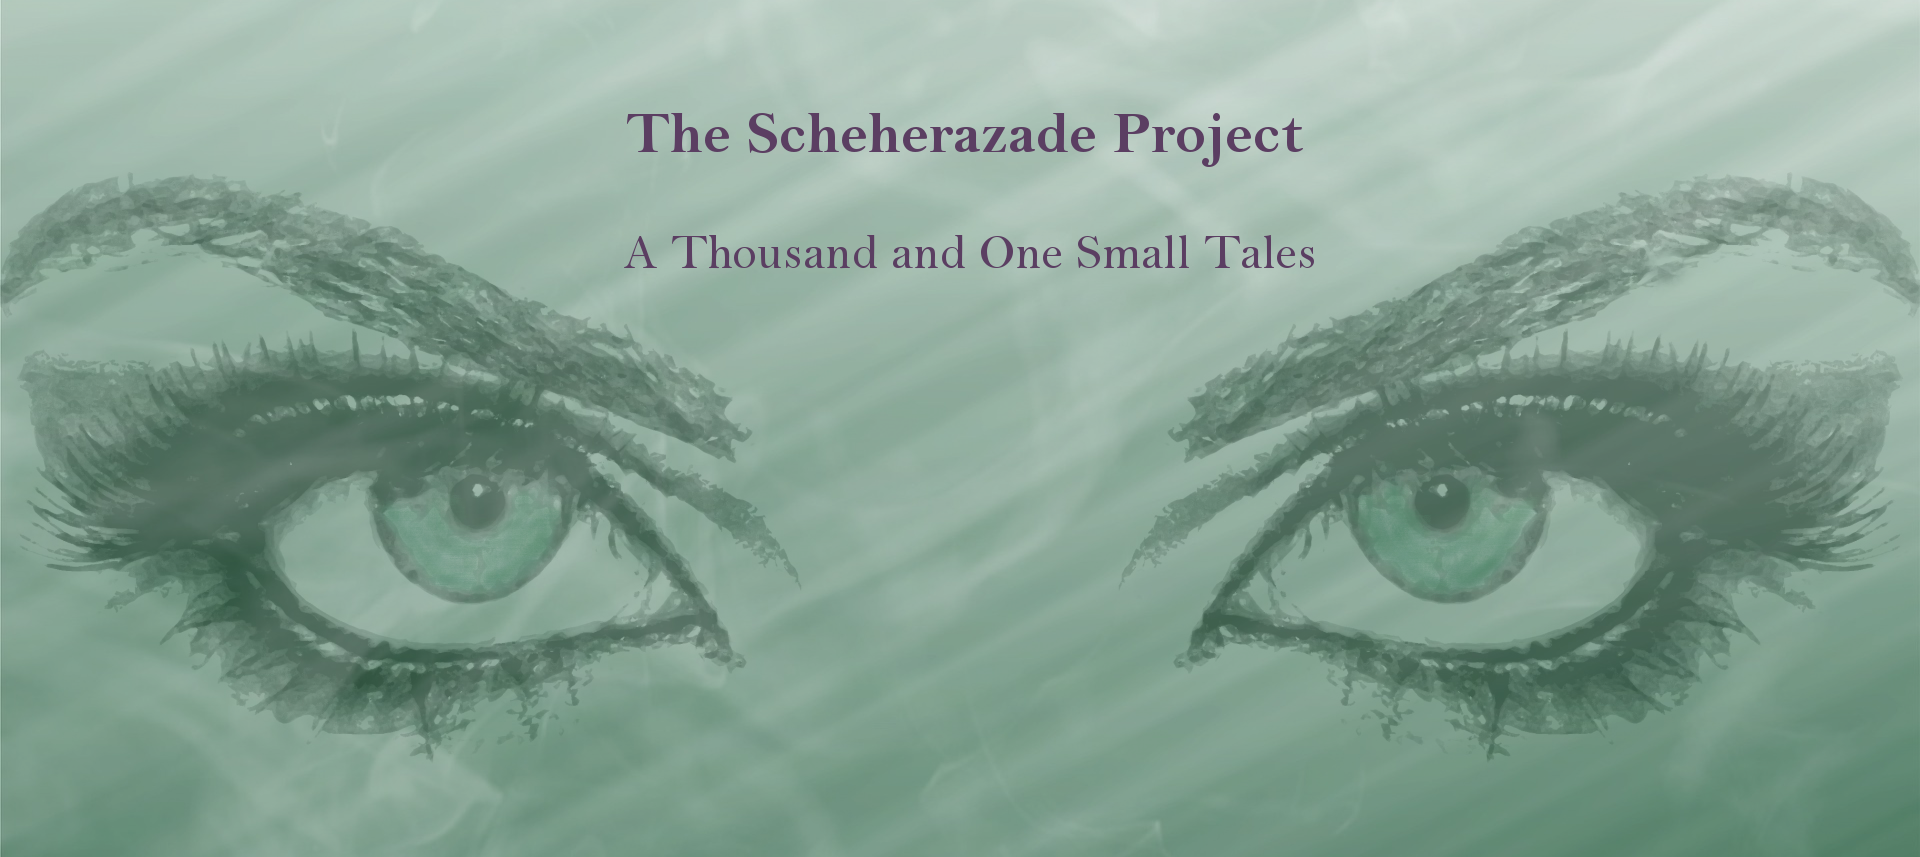 The Scheherazade Project